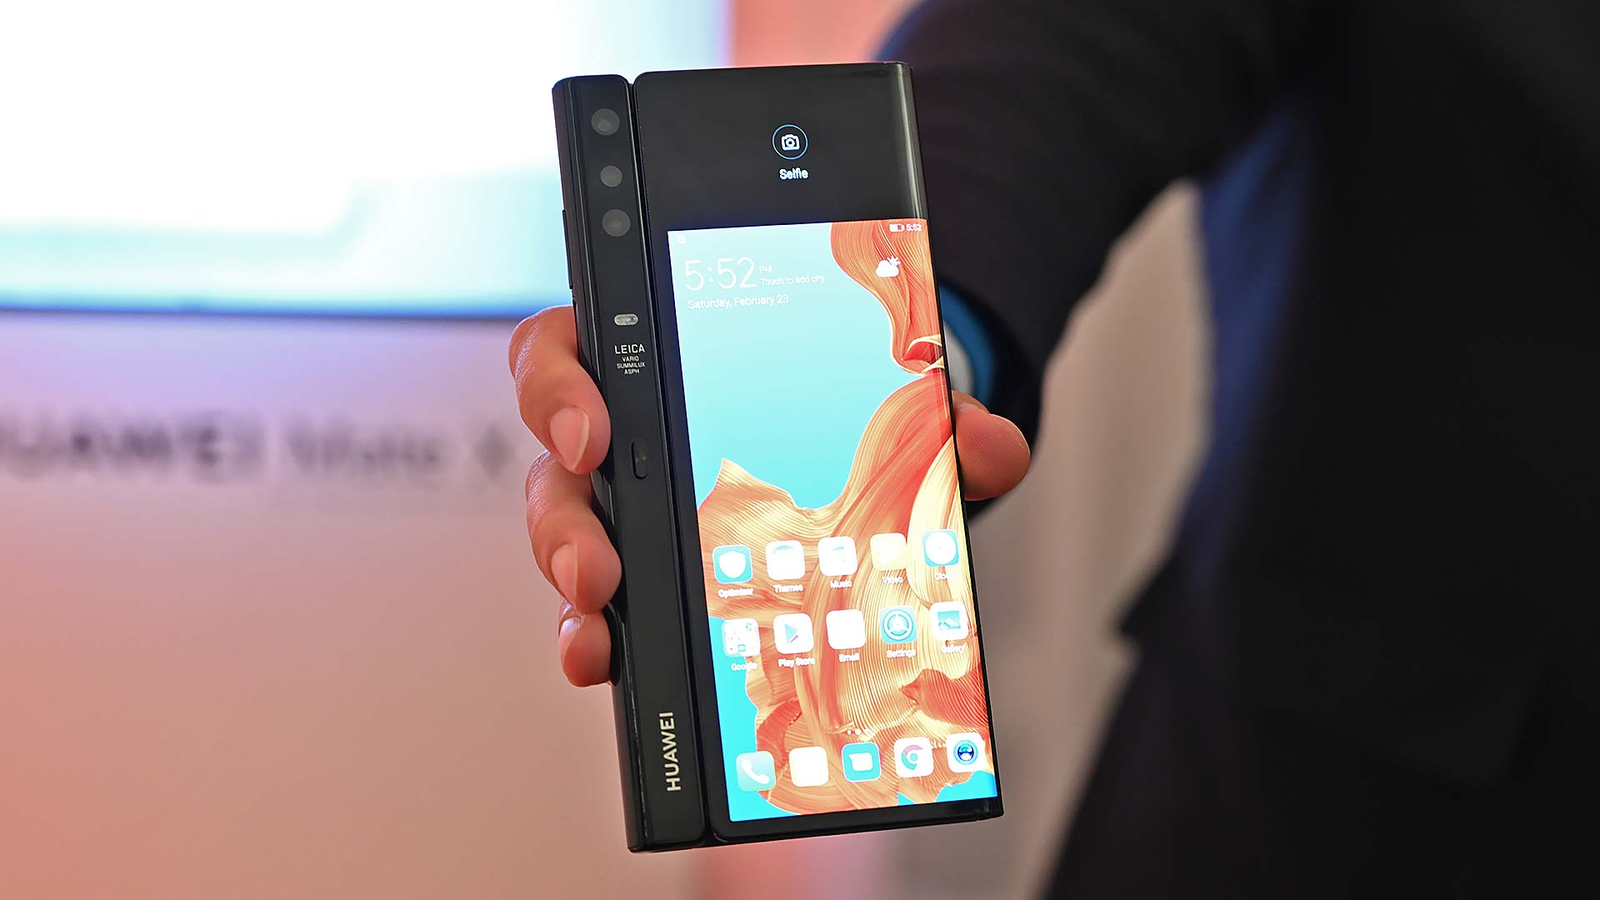 Because you can always see at least one screen when folded, Huawei didn't need to add cameras to every side of the device.